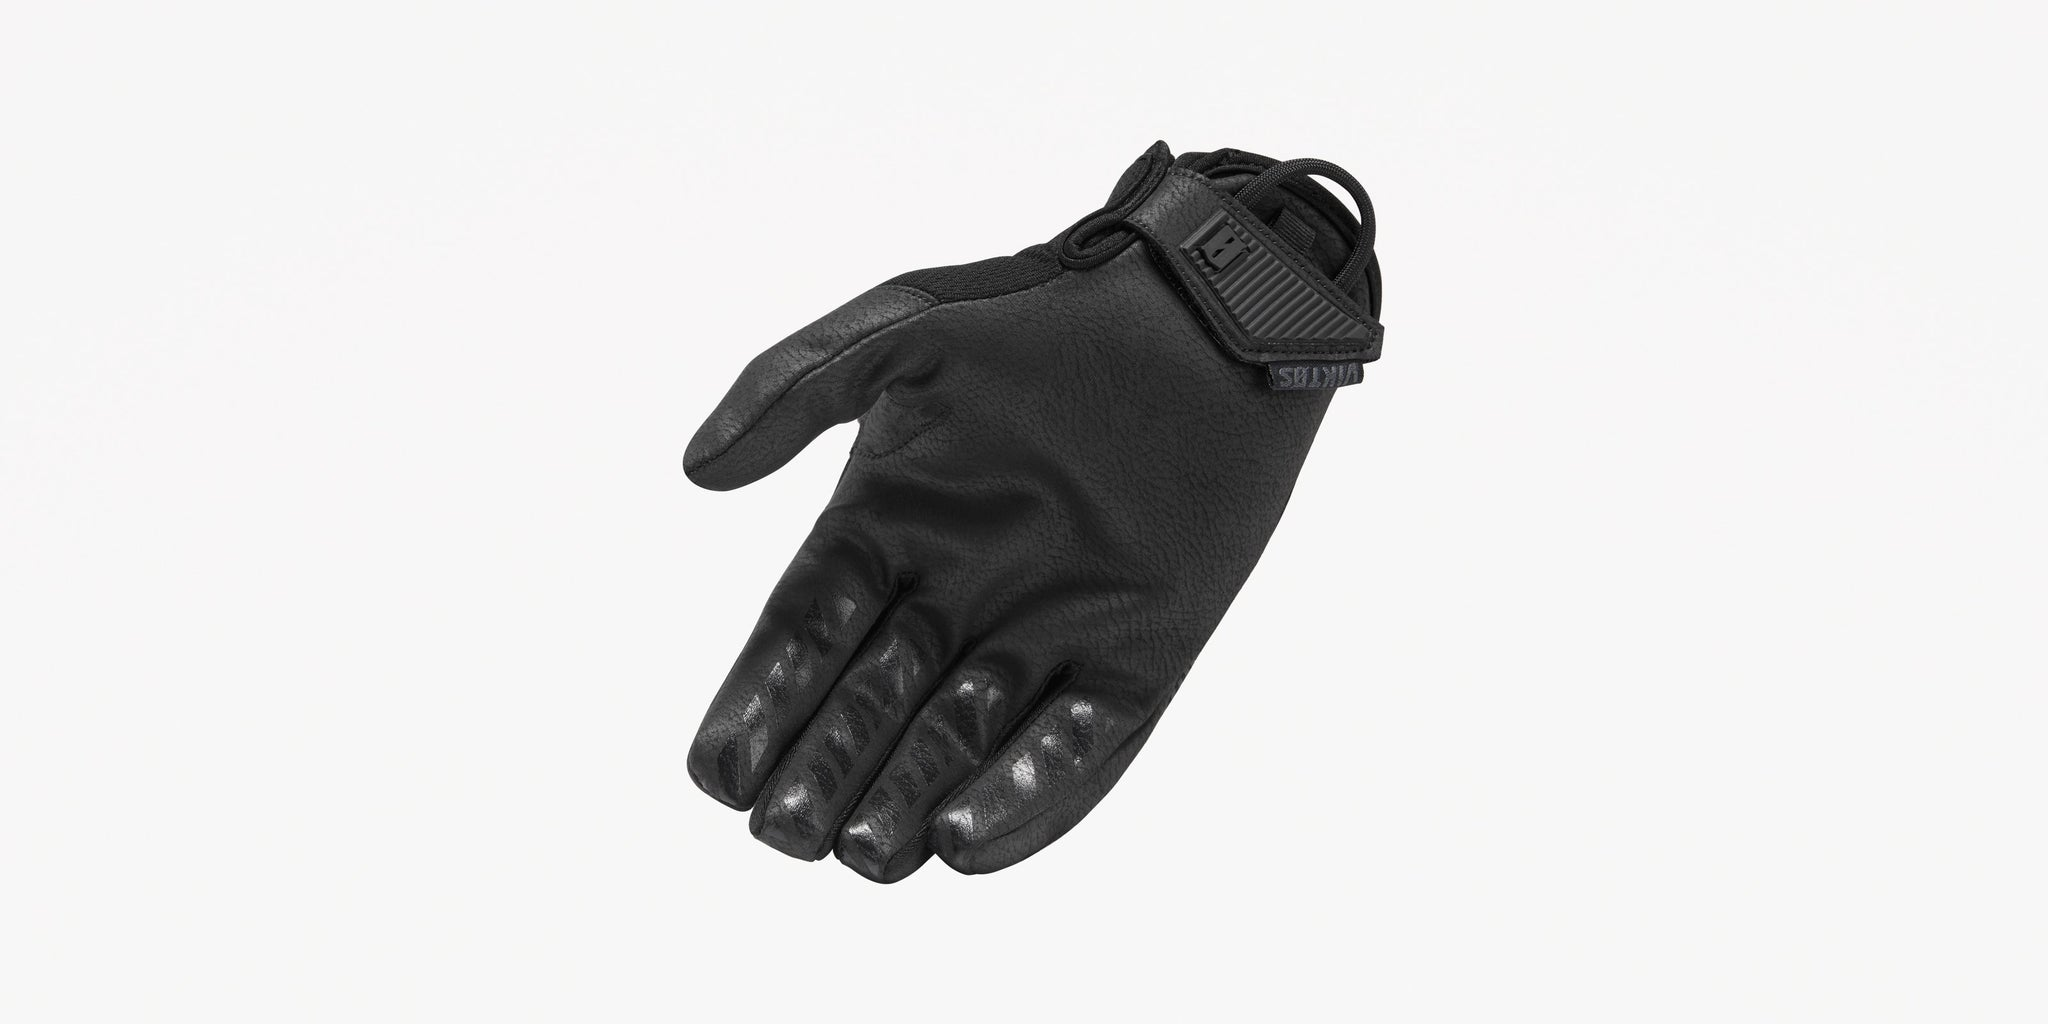 LEO DUTY GLOVE - Black